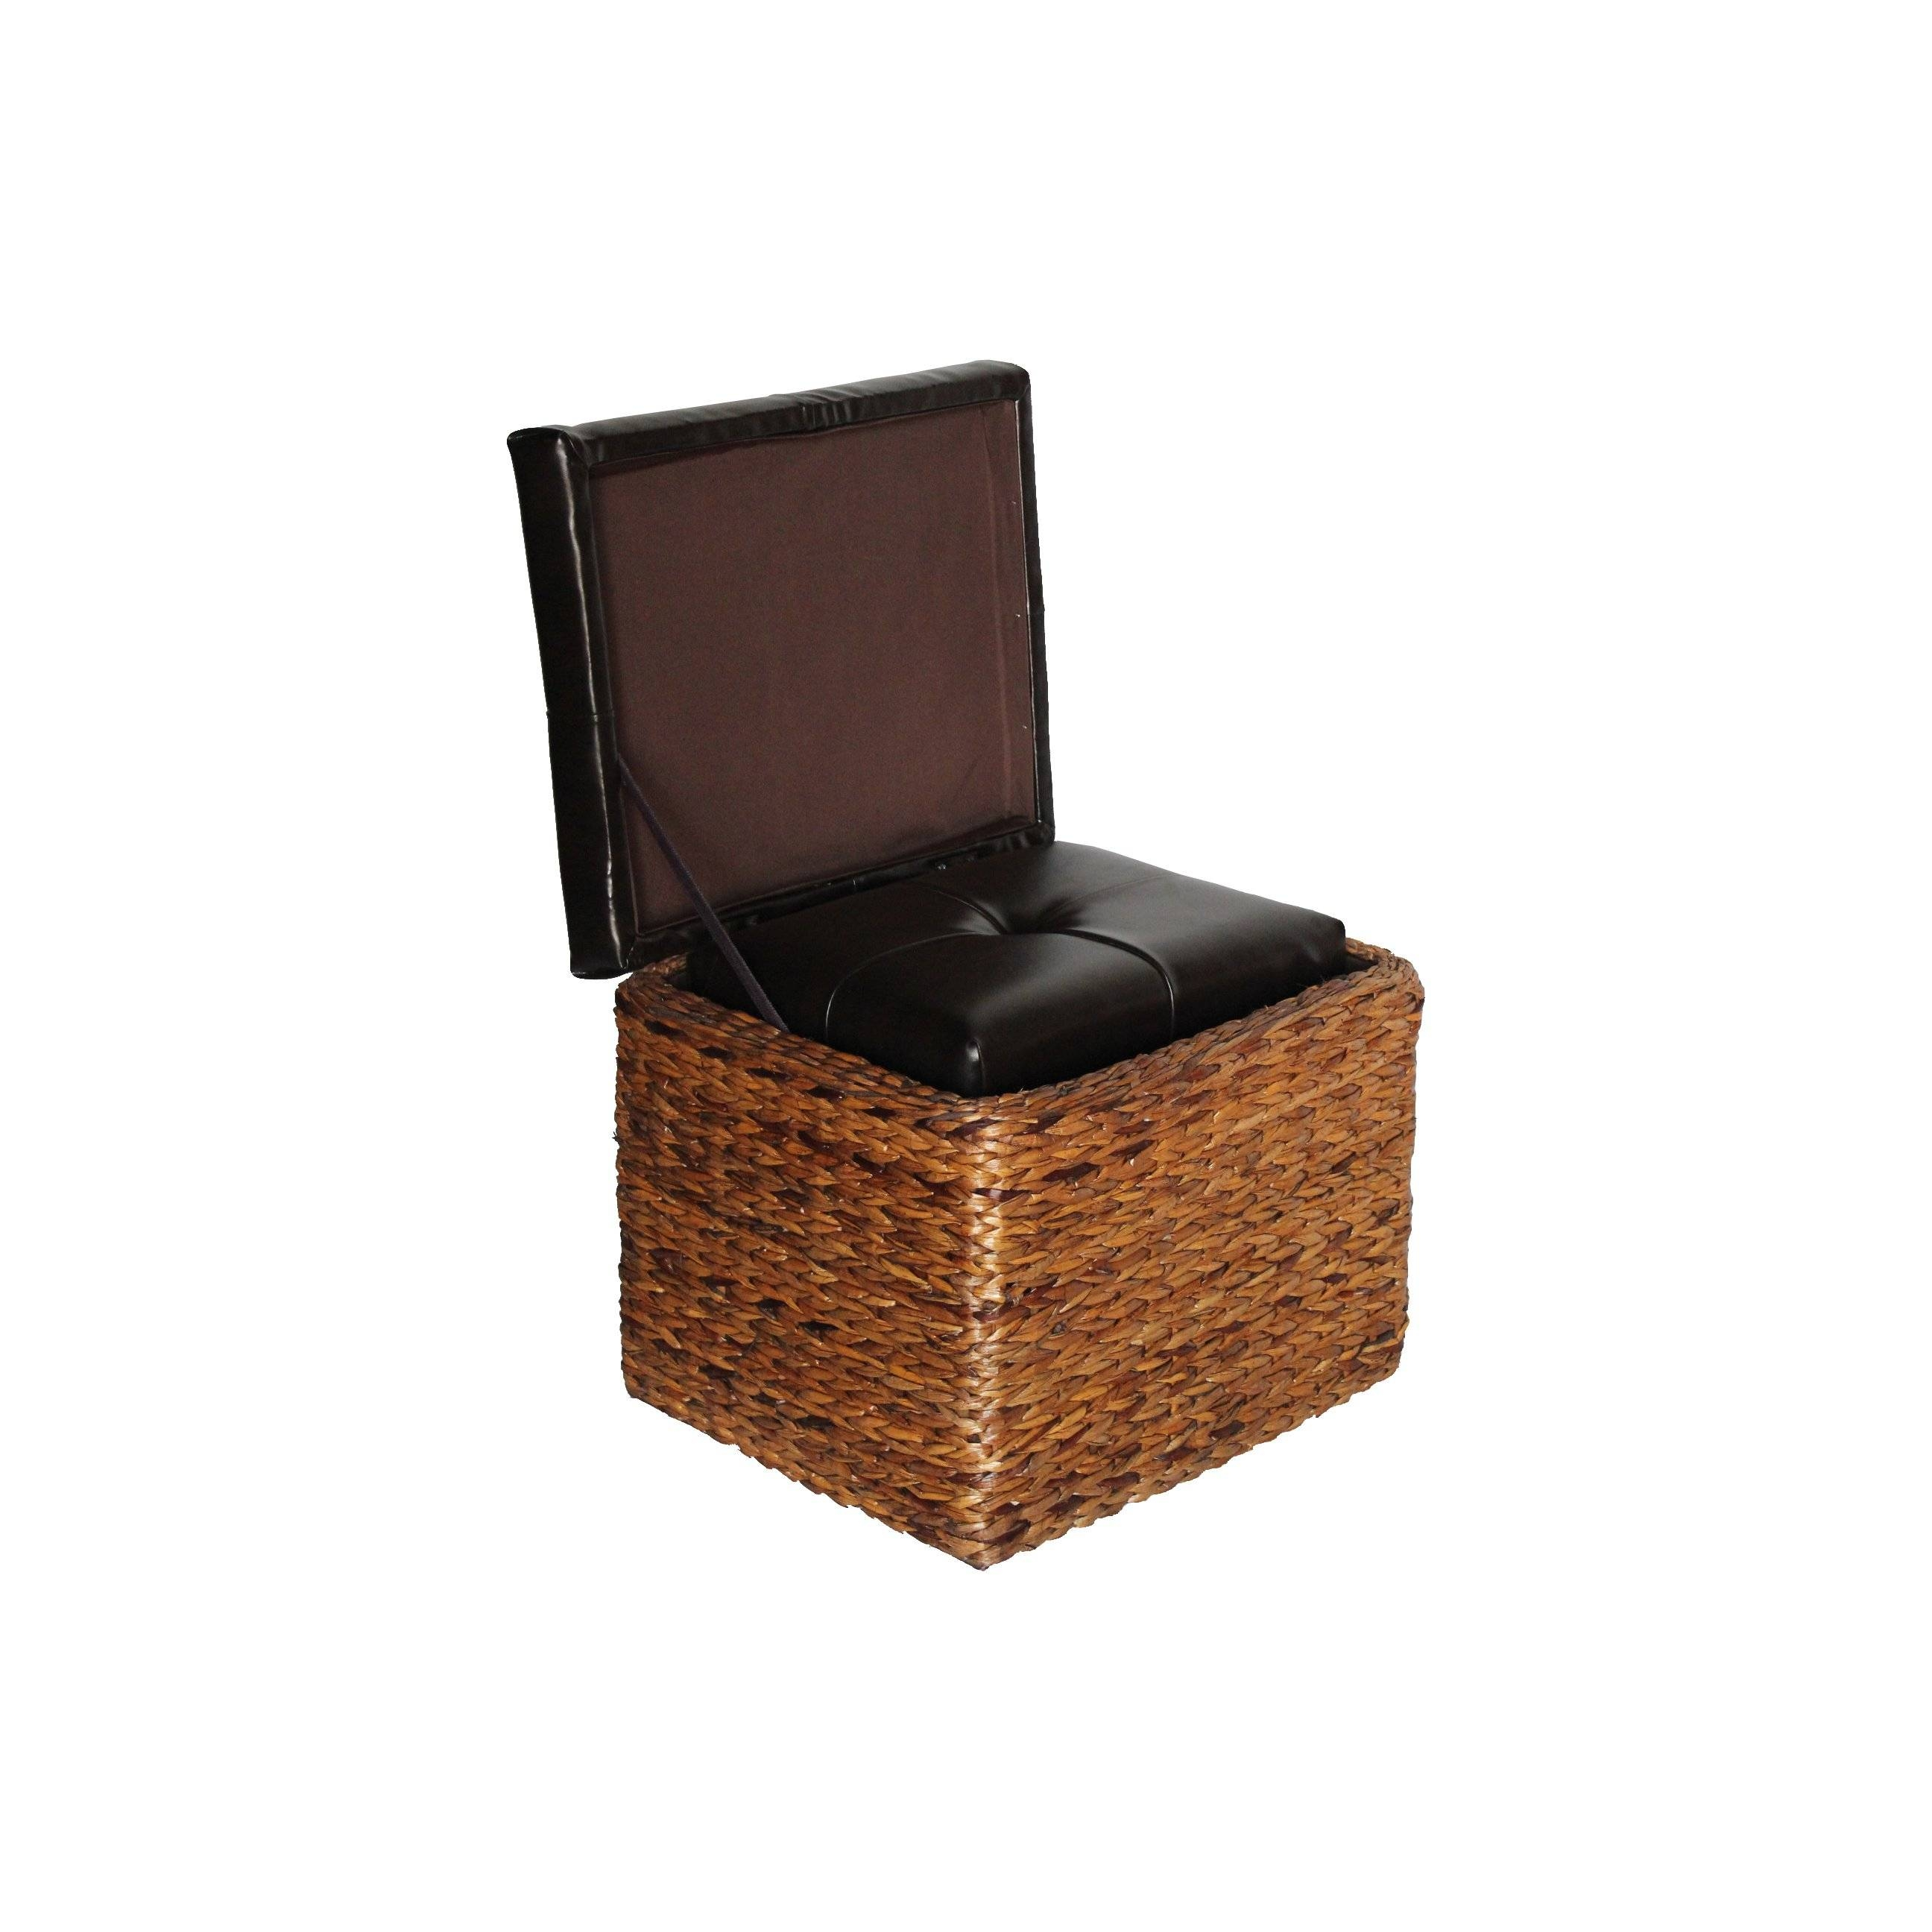 Furniture: Rustic Wicker Trunk For Vintage Storage Ideas intended for Silver Trunk Coffee Tables (Image 13 of 30)